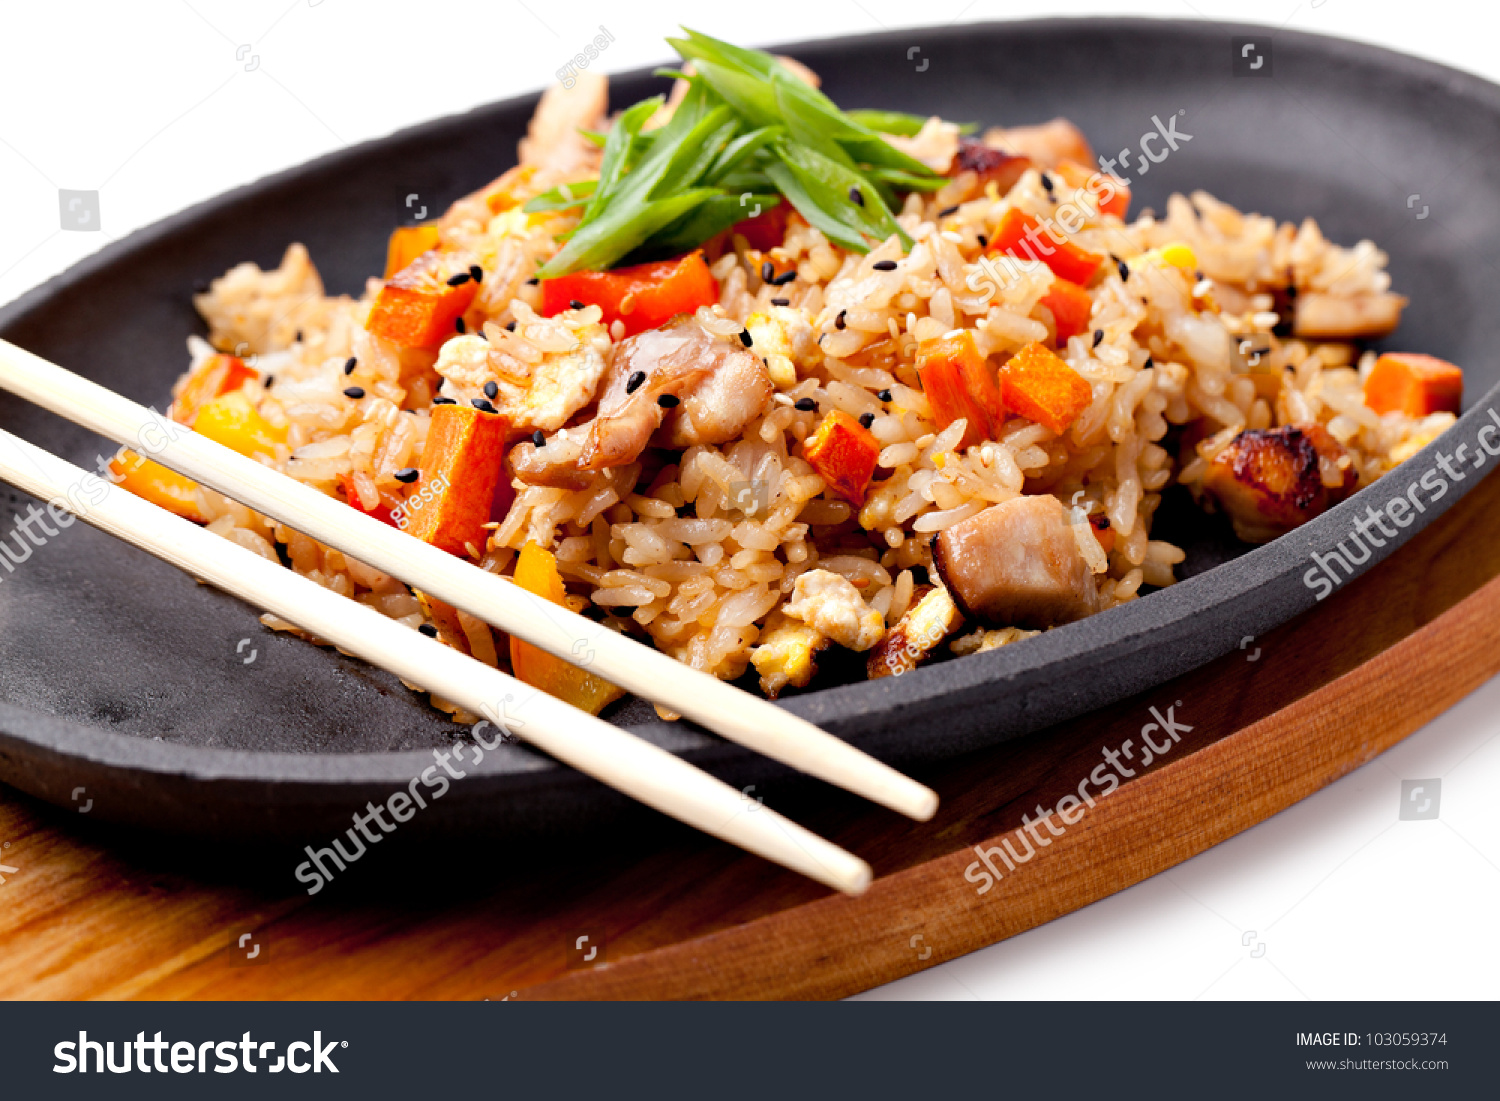 Seafood tyahan or rice with seafood 72